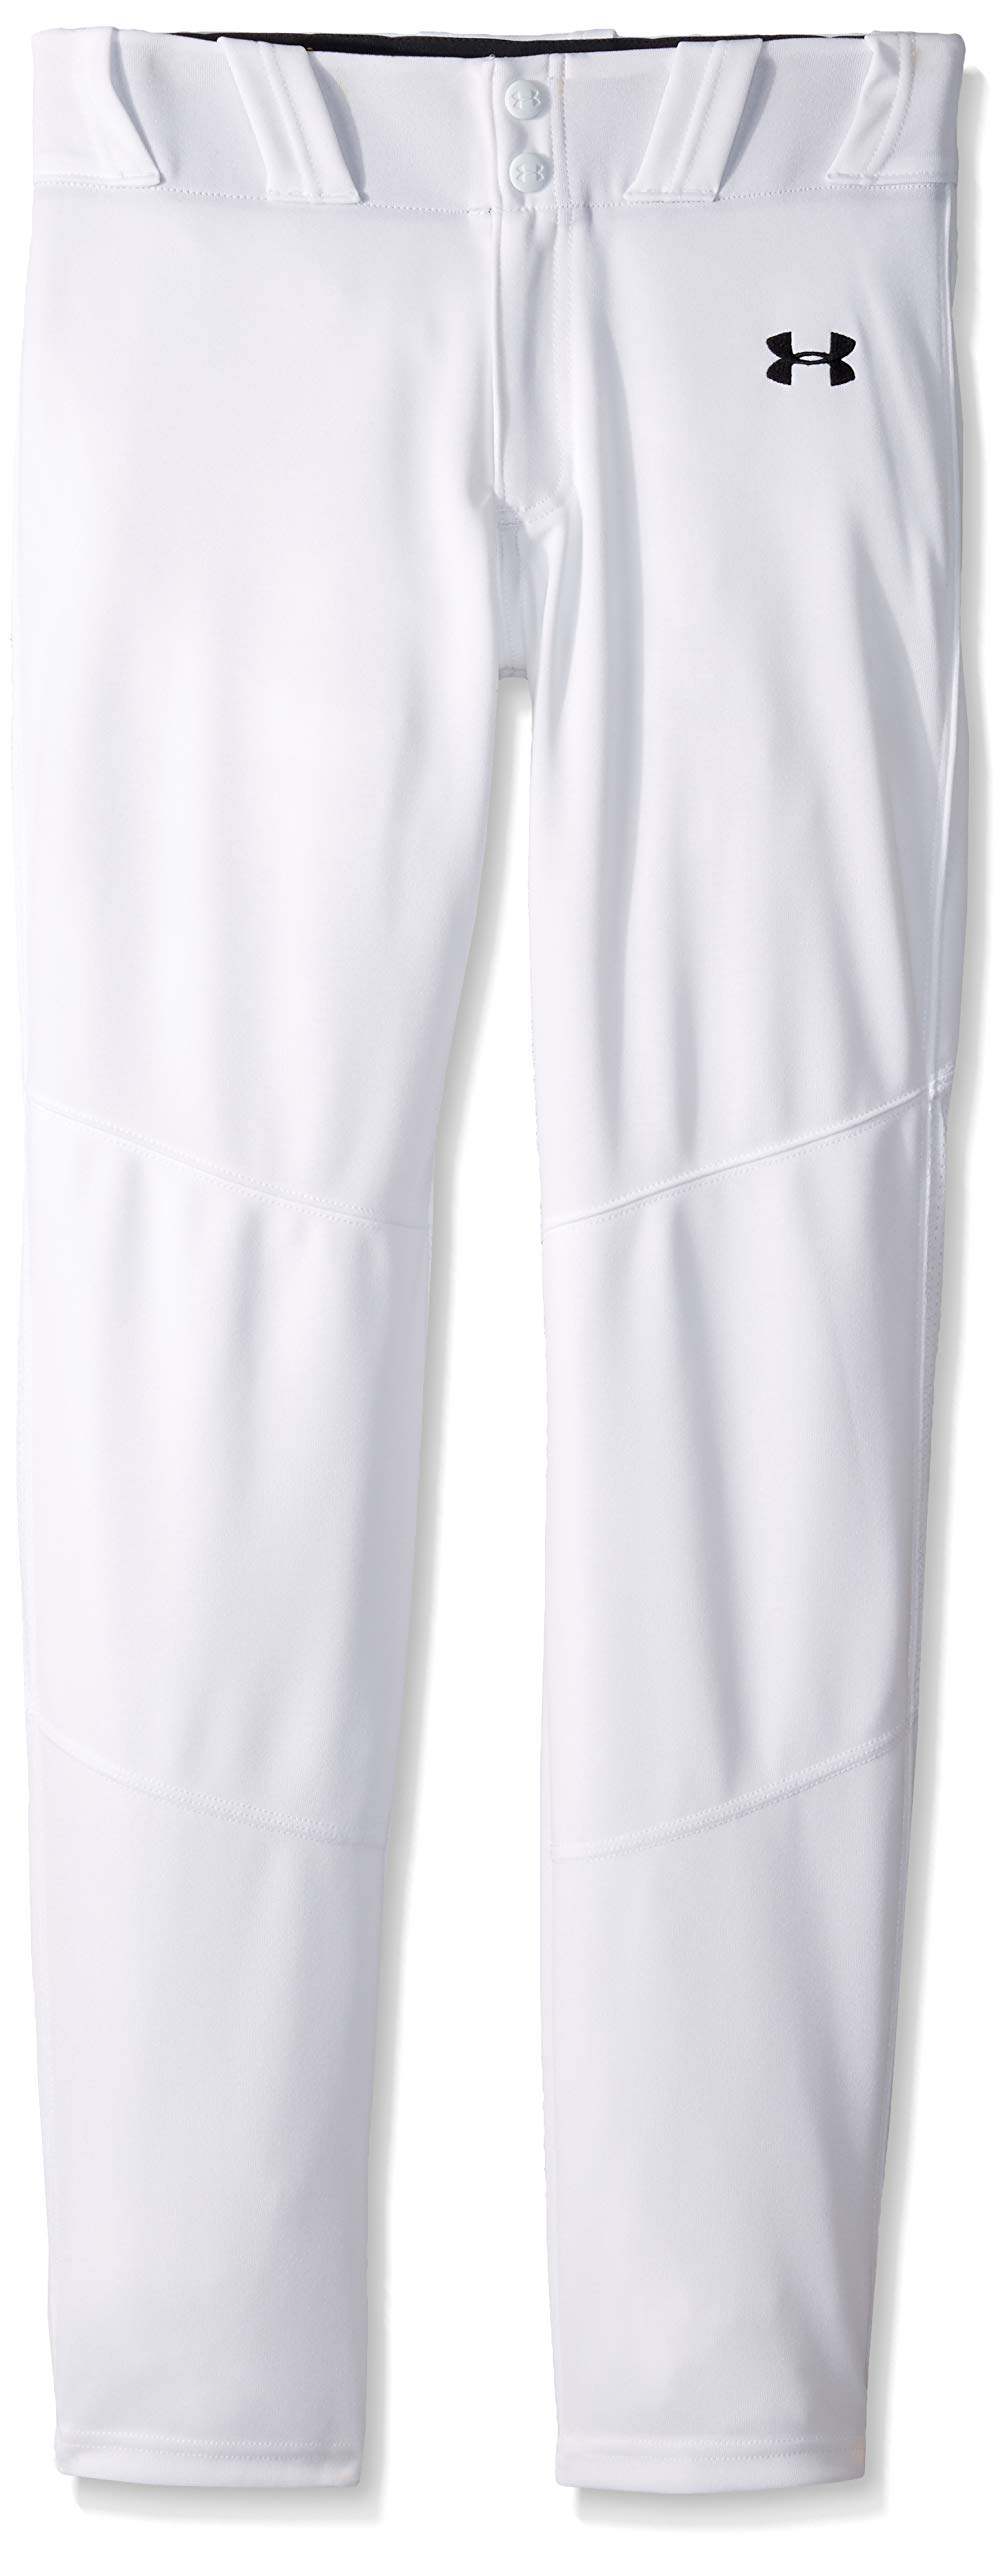 Under Armour Boys IL Ace Relaxed Pants, White (100)/Black, Youth X-Small by Under Armour